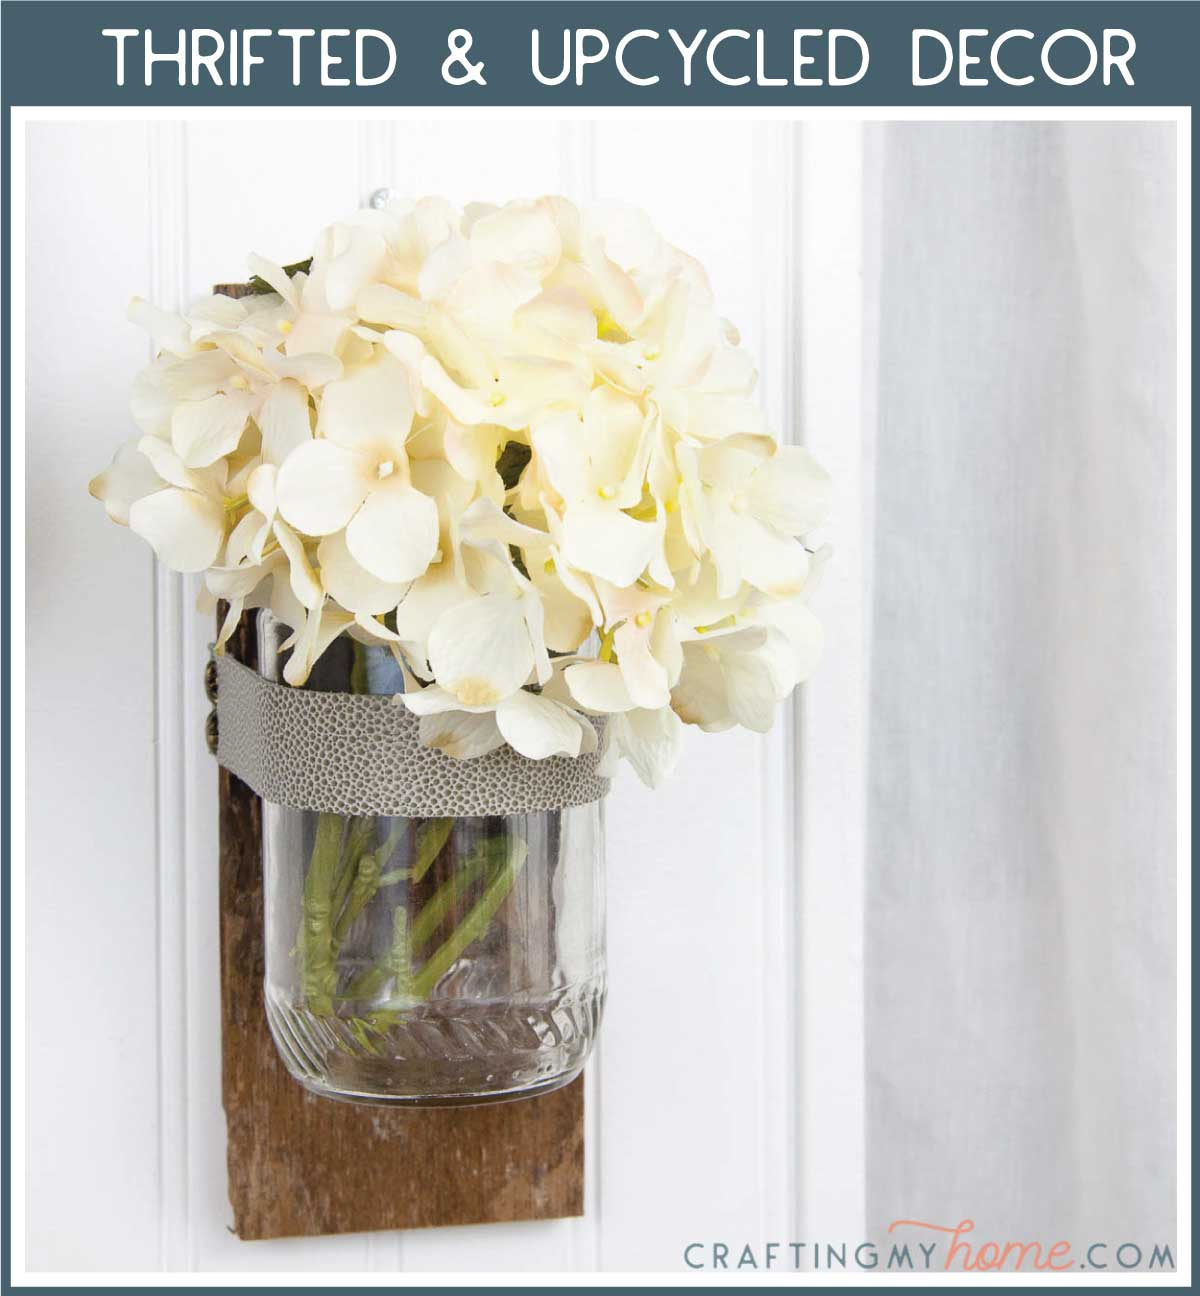 Wall vase made from upcycled items holding flowers with a navy box around it and white text: Thrifted & Upcycled Decor.